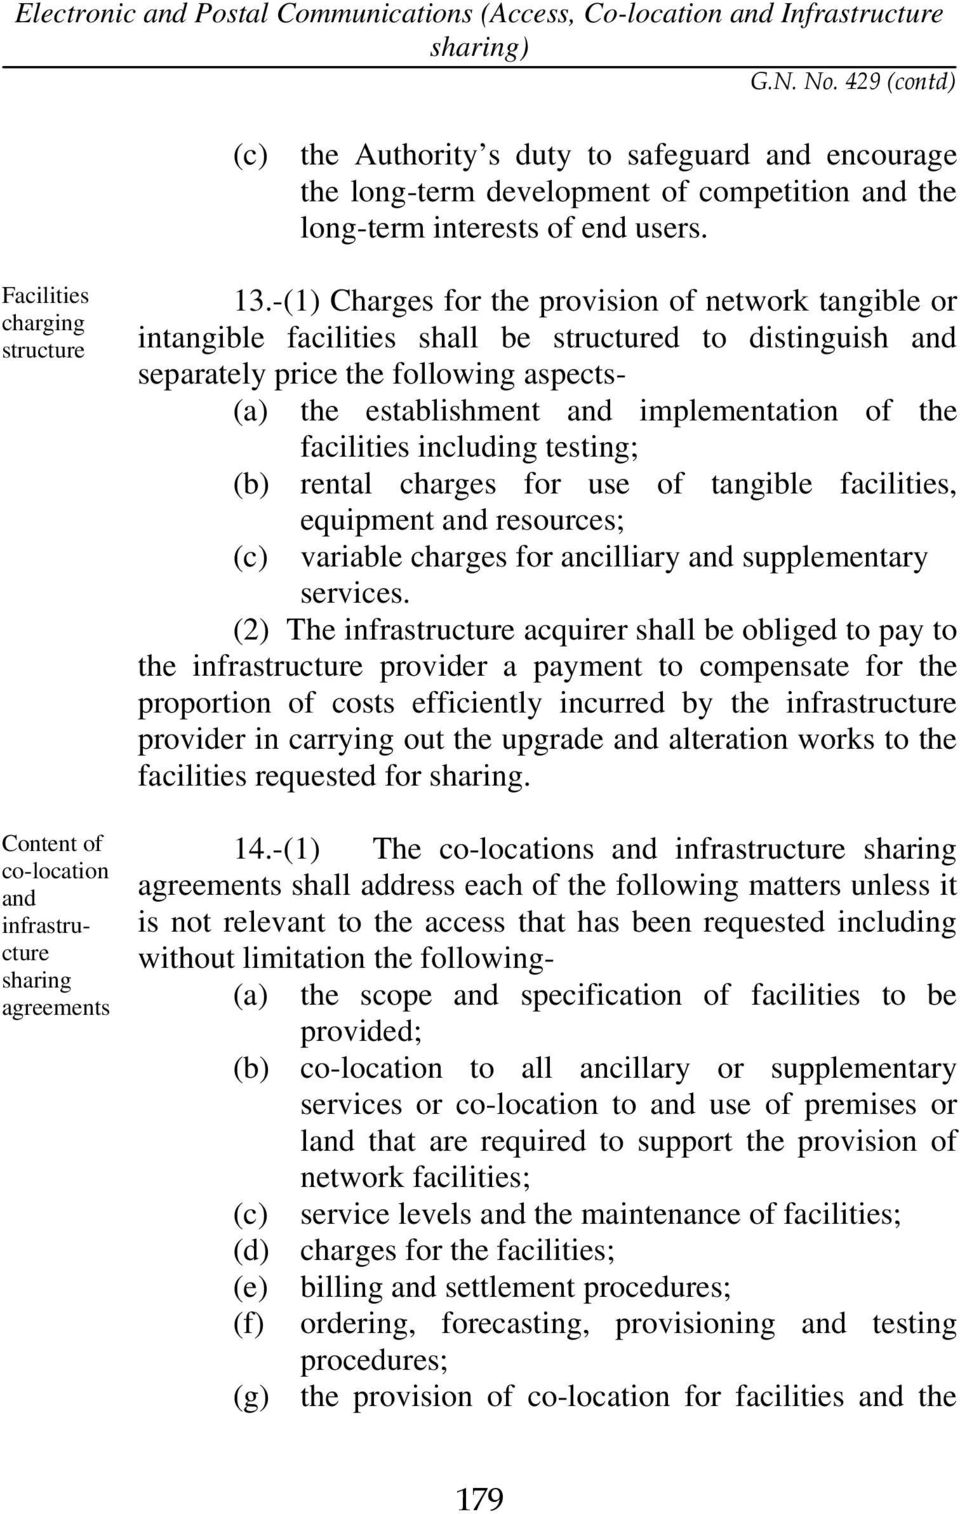 -(1) Charges for the provision of network tangible or intangible facilities shall be structured to distinguish and separately price the following aspects- (a) the establishment and implementation of